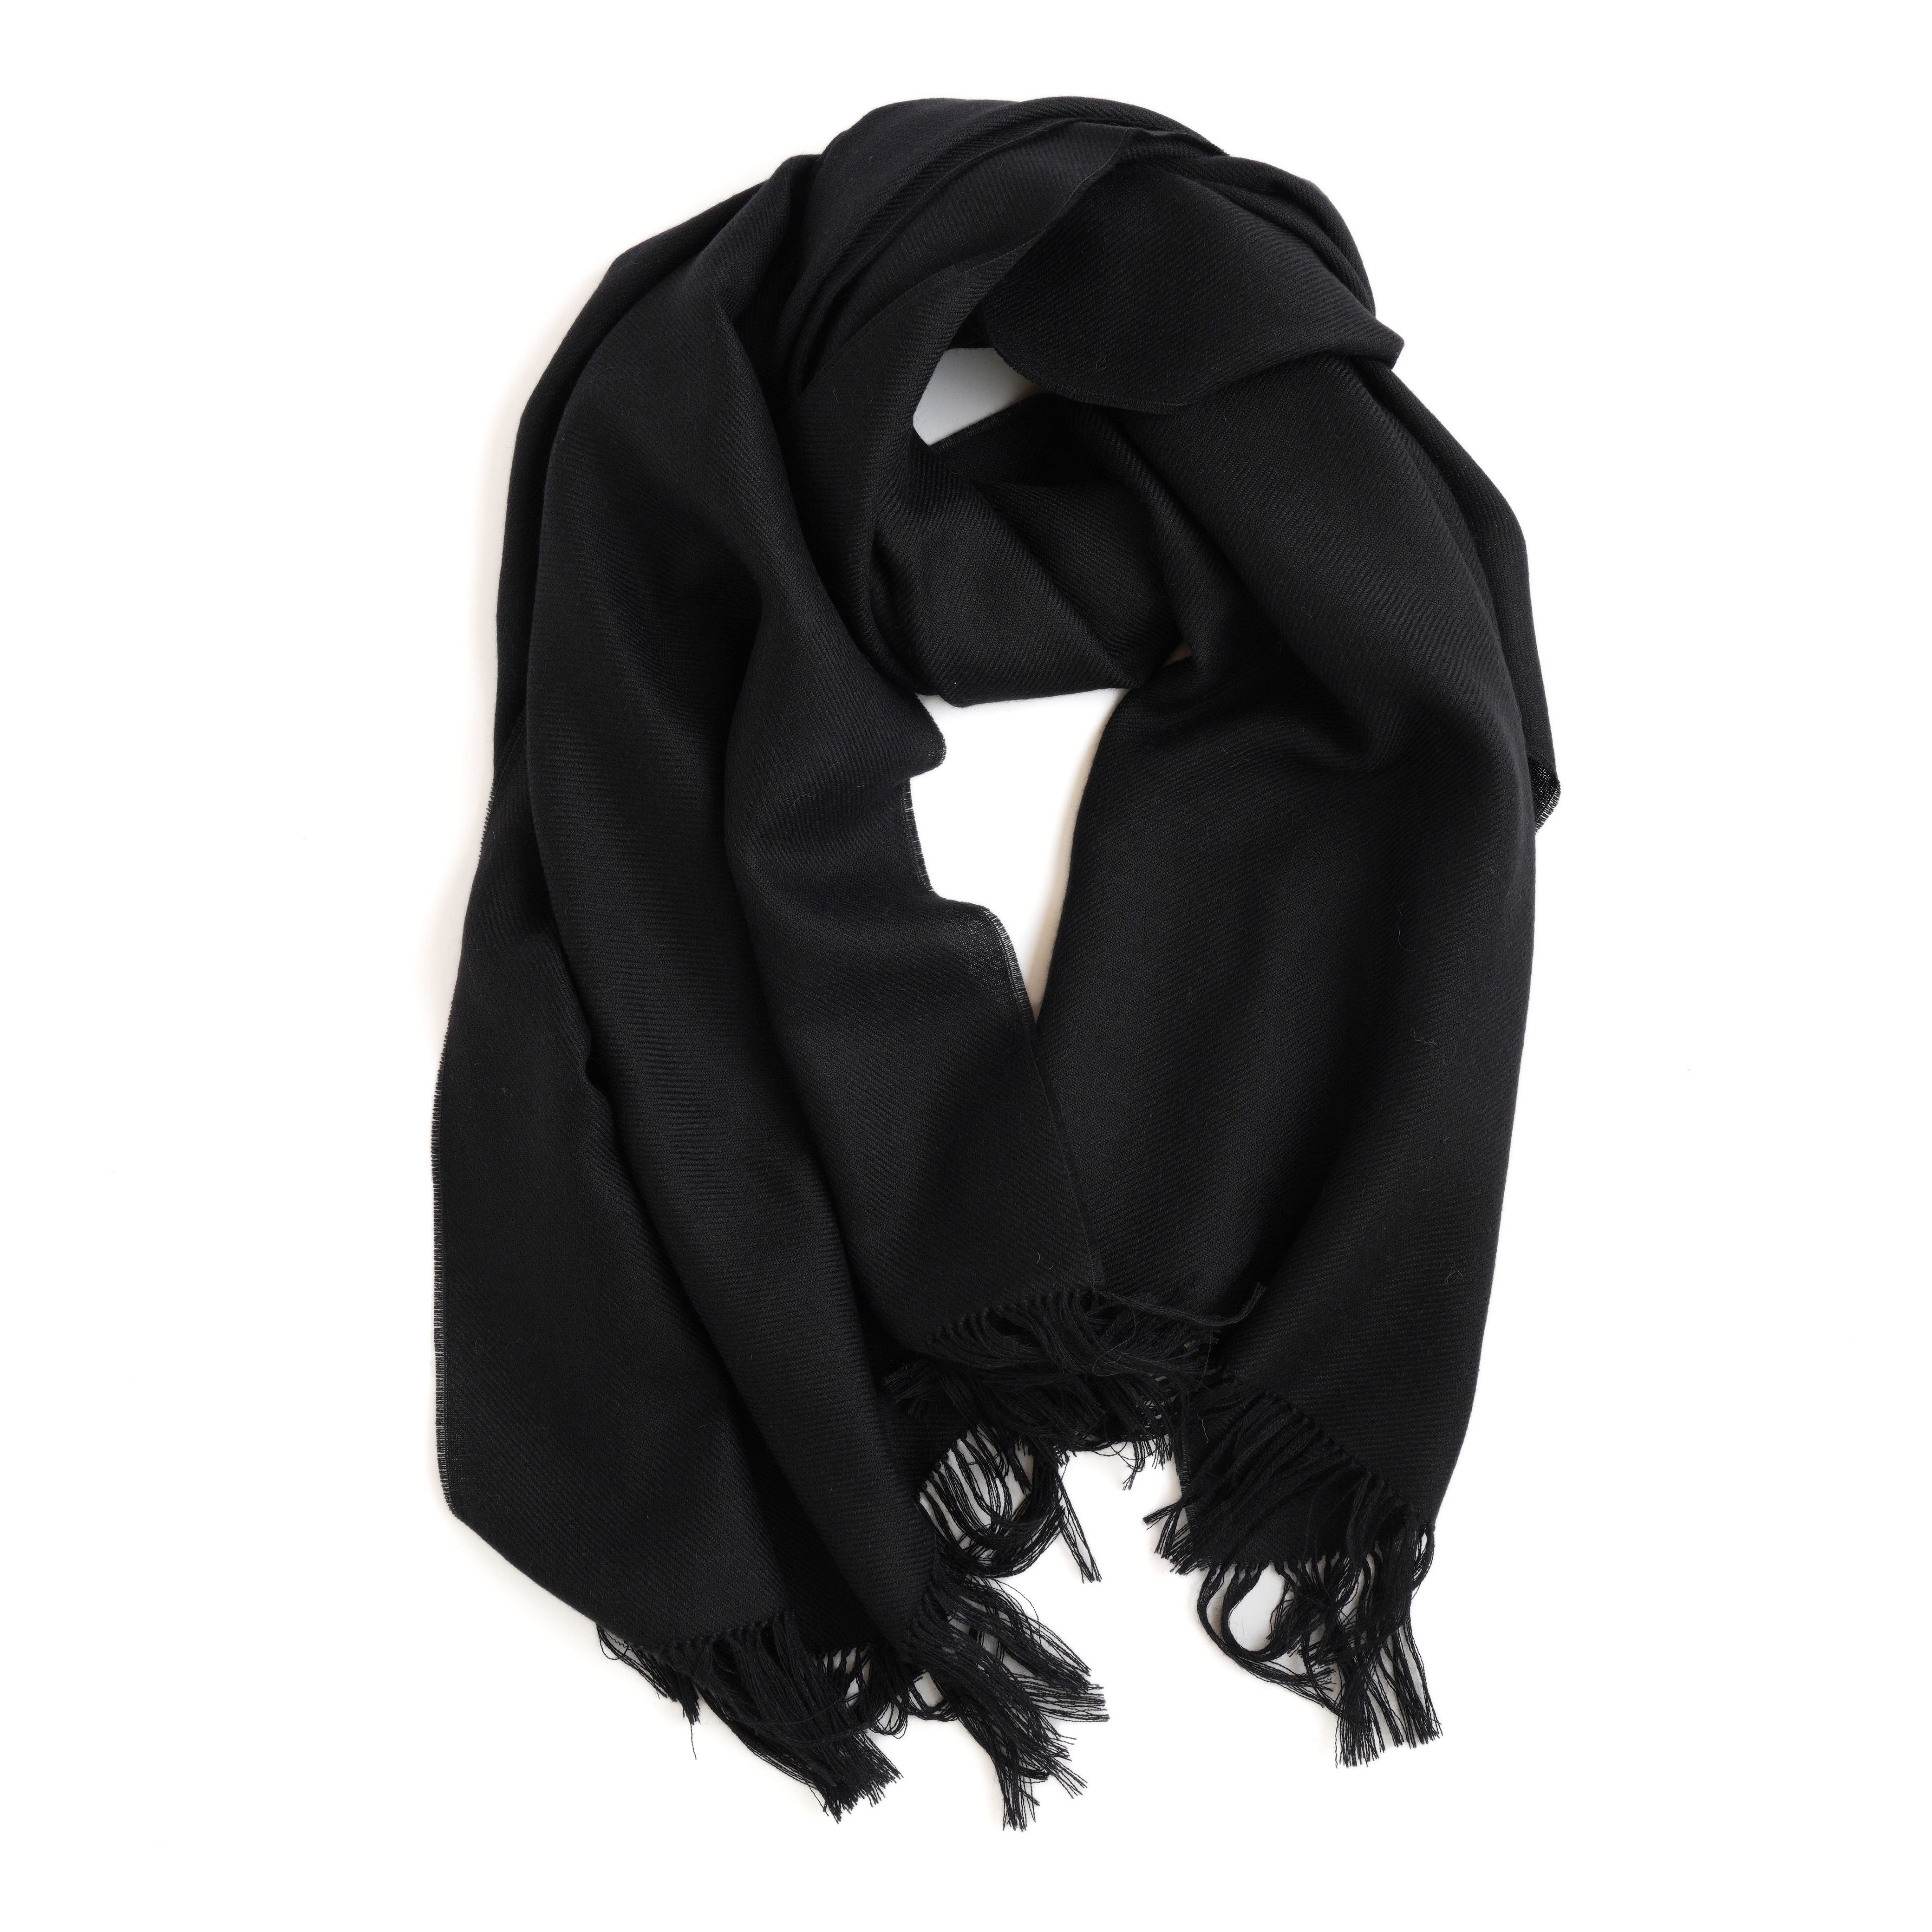 THE INOUE BROTHERS/Non Brushed Large Stole/Black